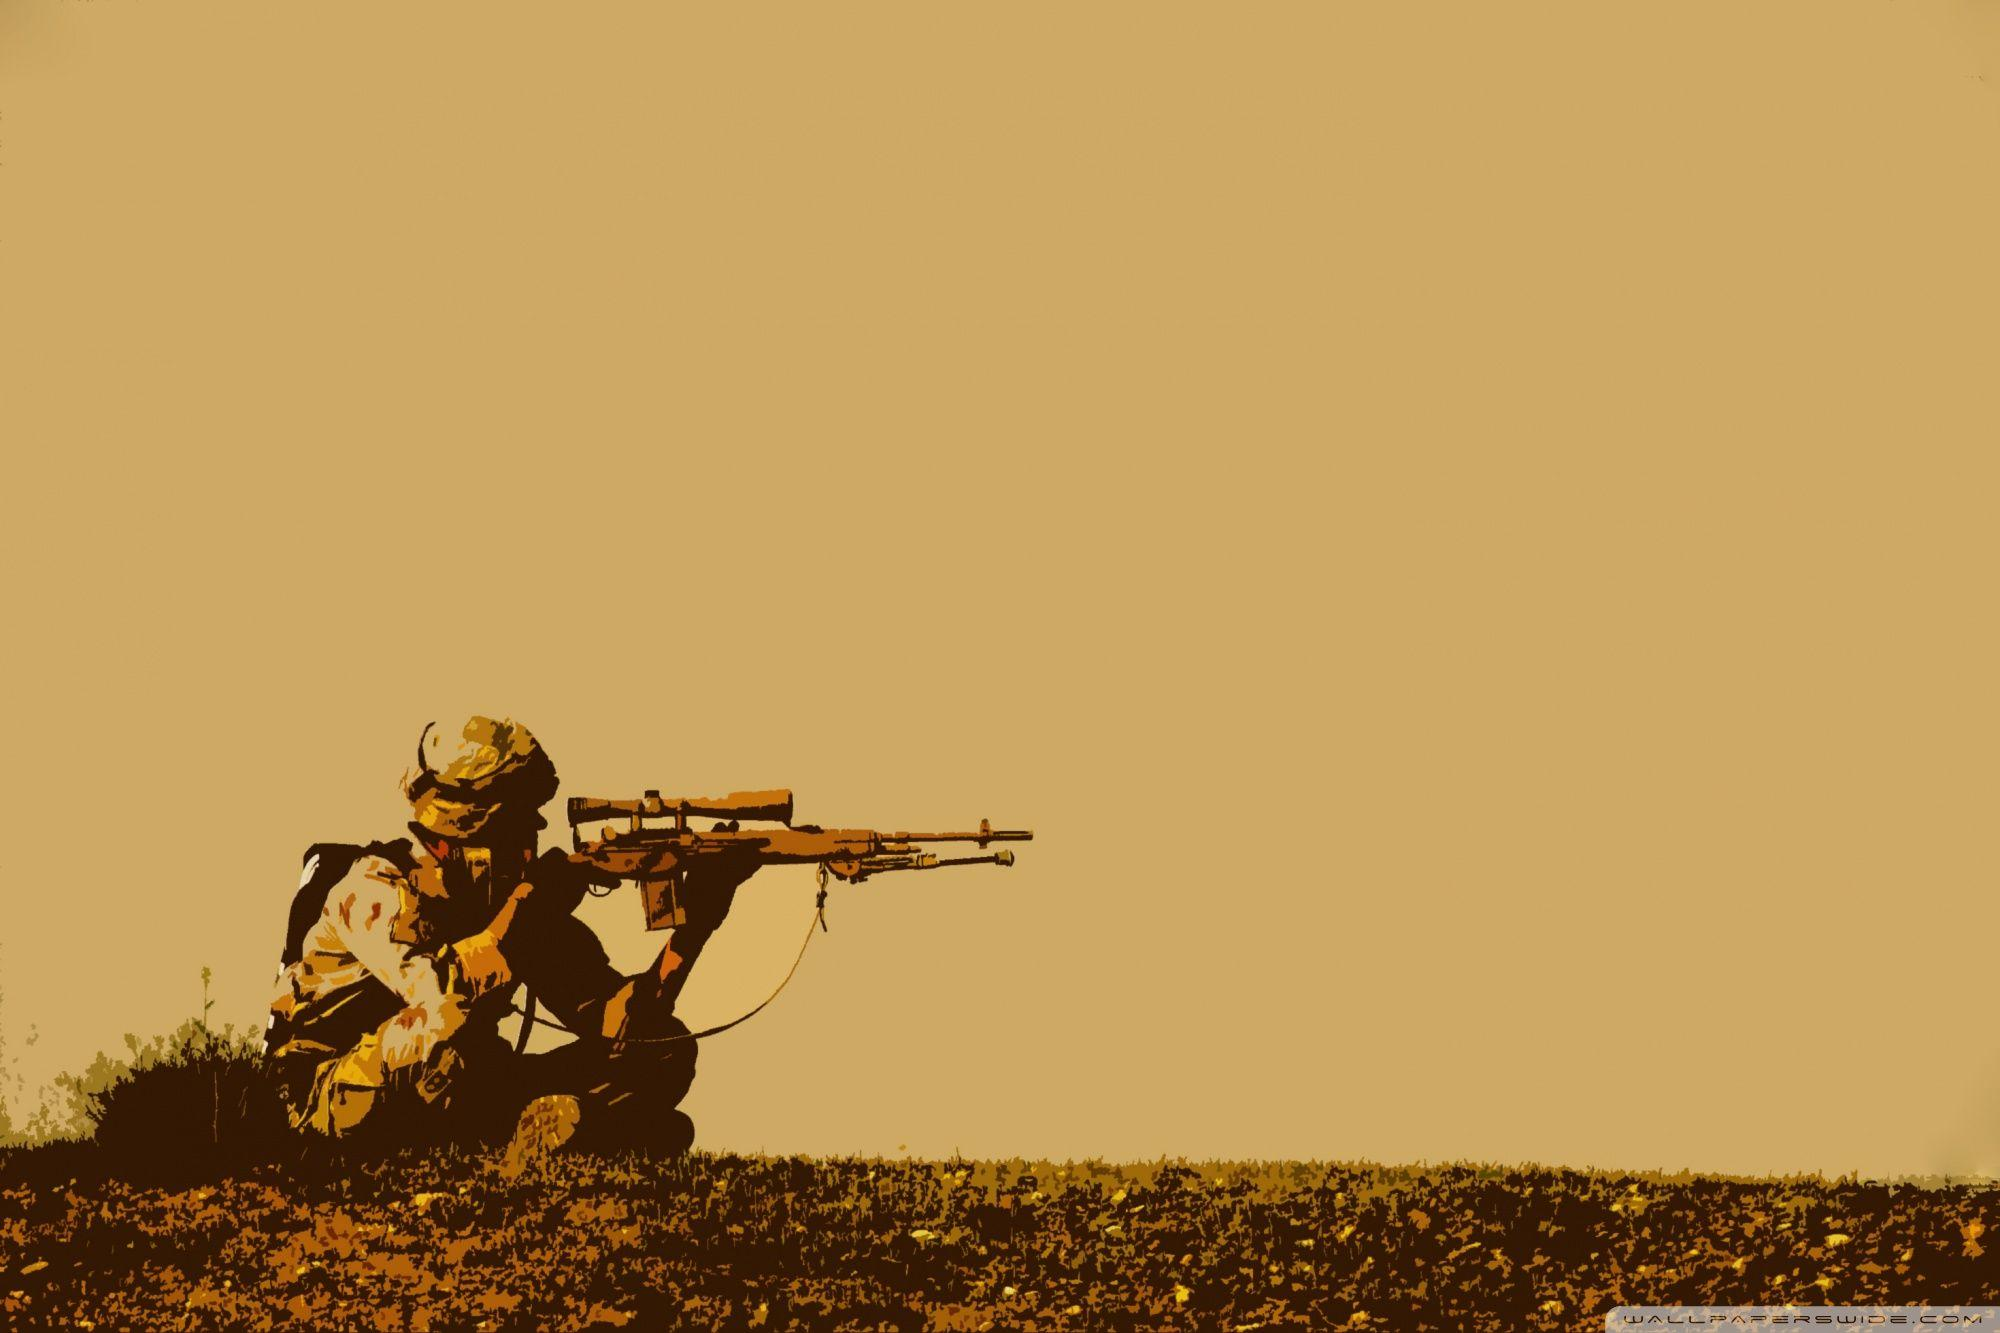 Us Army Soldier ❤ 4K HD Desktop Wallpapers for 4K Ultra HD TV • Dual